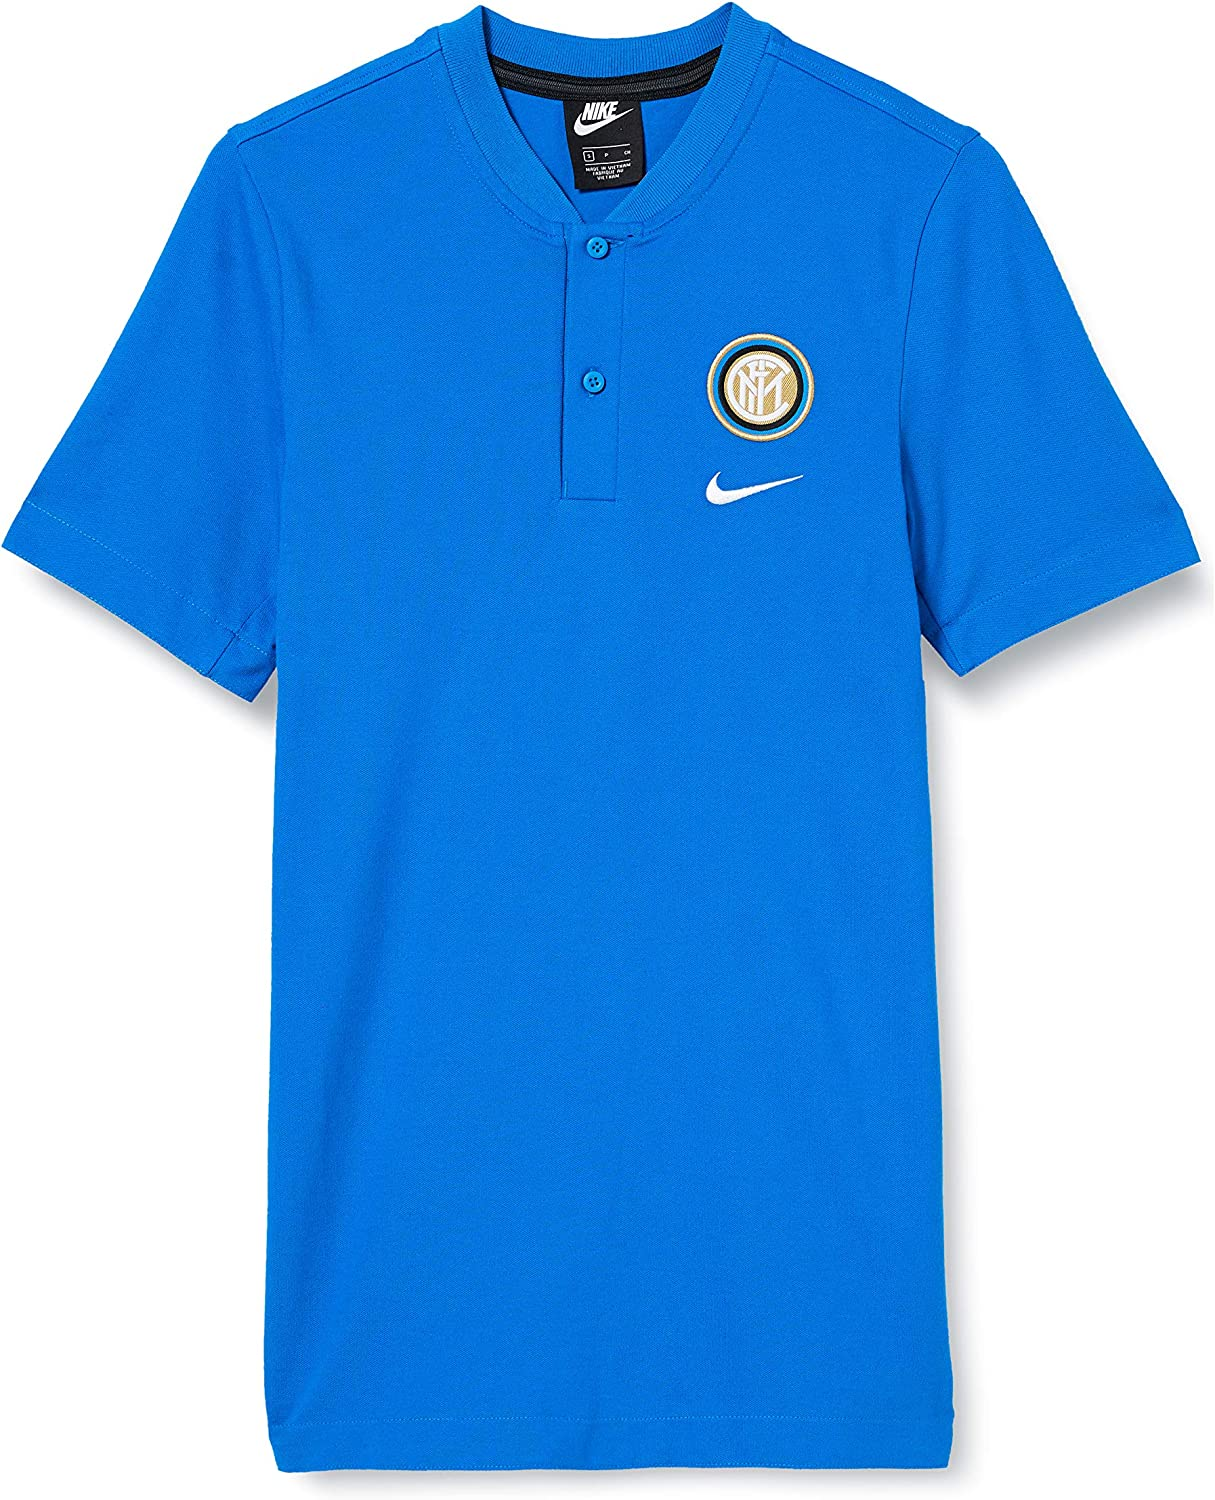 2019-2020 Inter Milan Authentic Polo Shirt Blue Sports & Outdoors ...